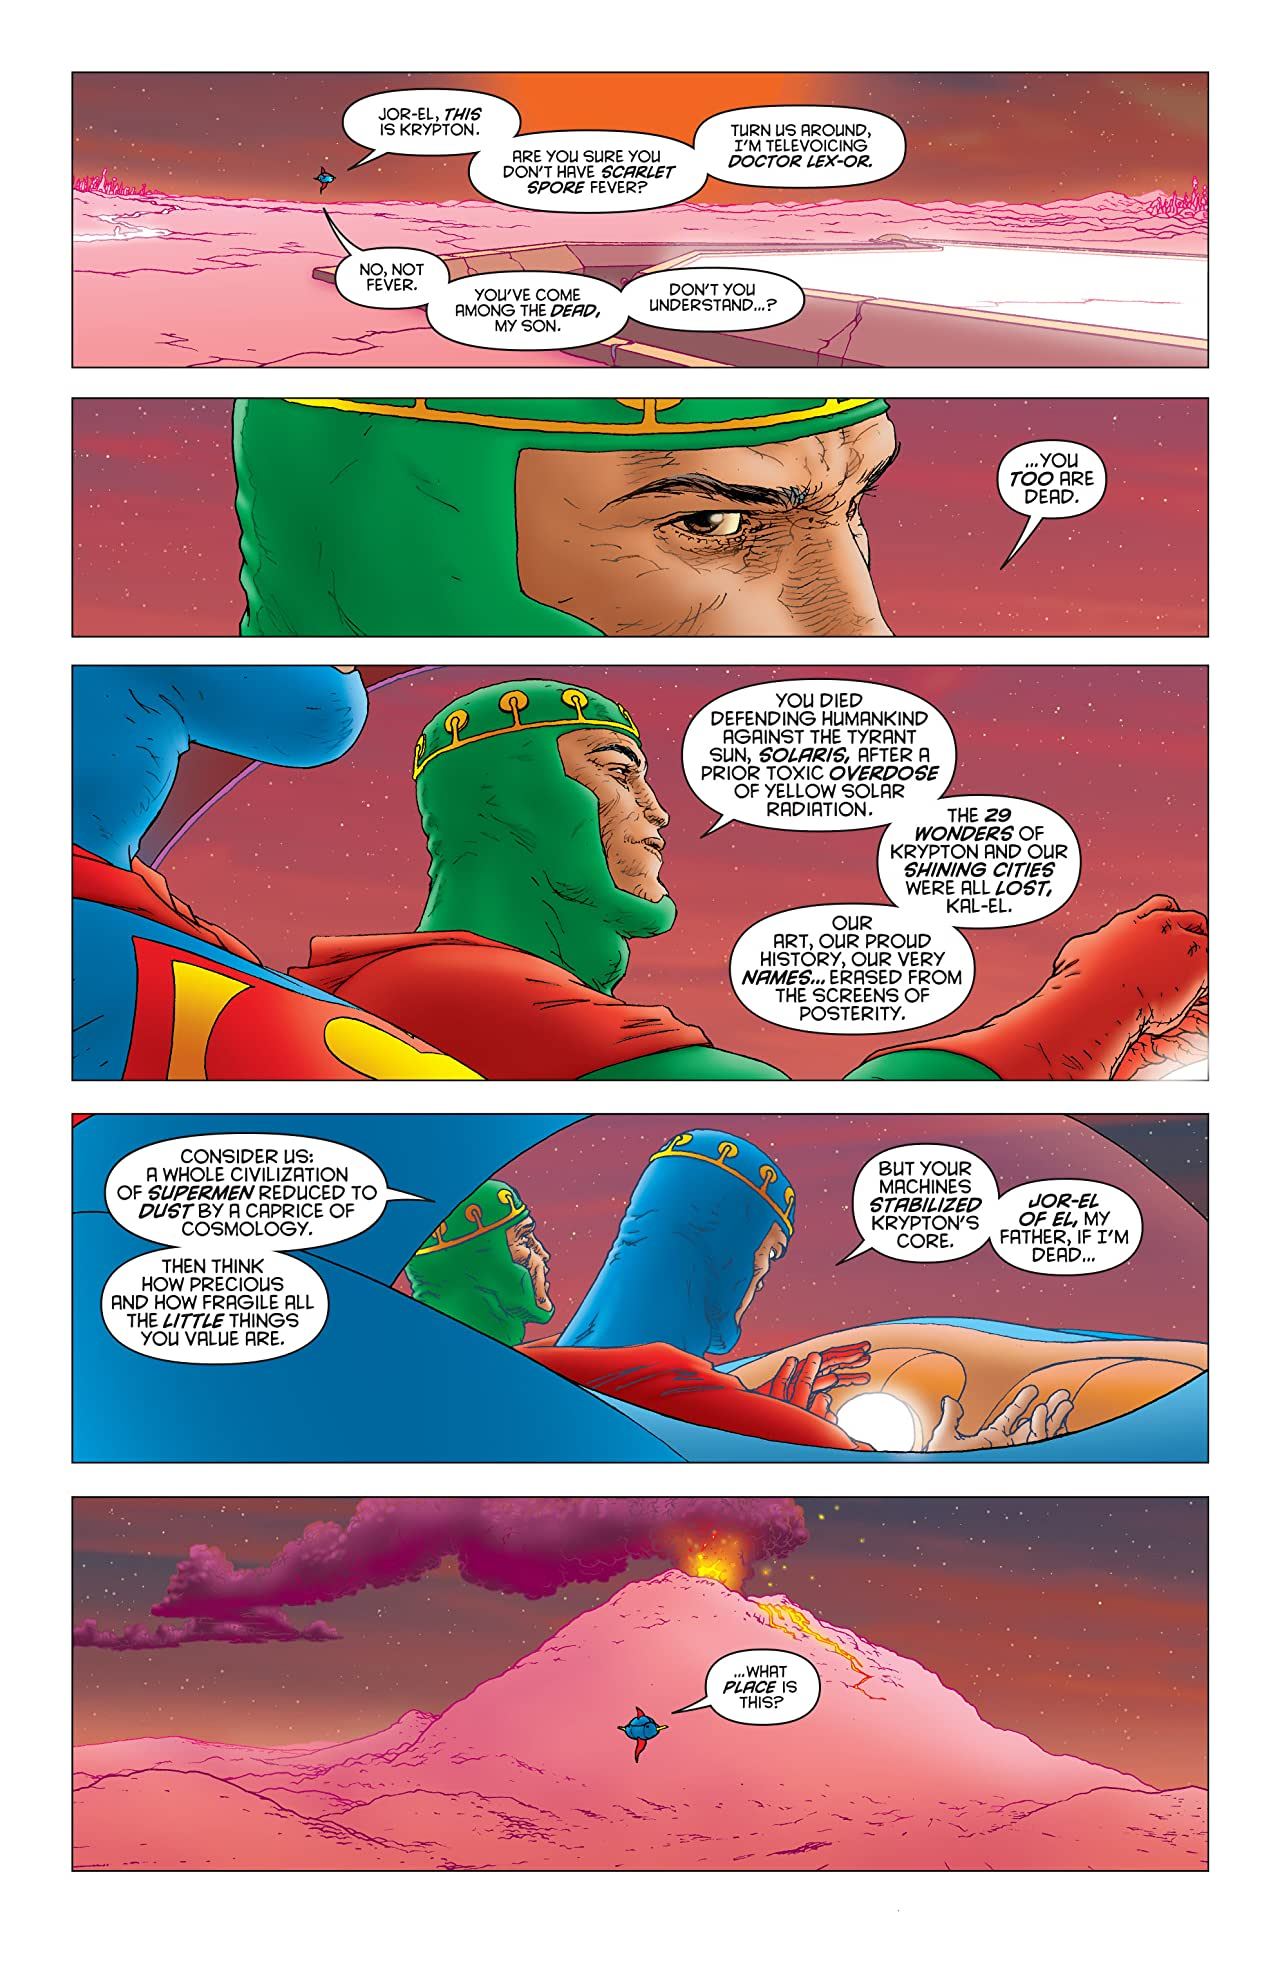 All Star Superman #12